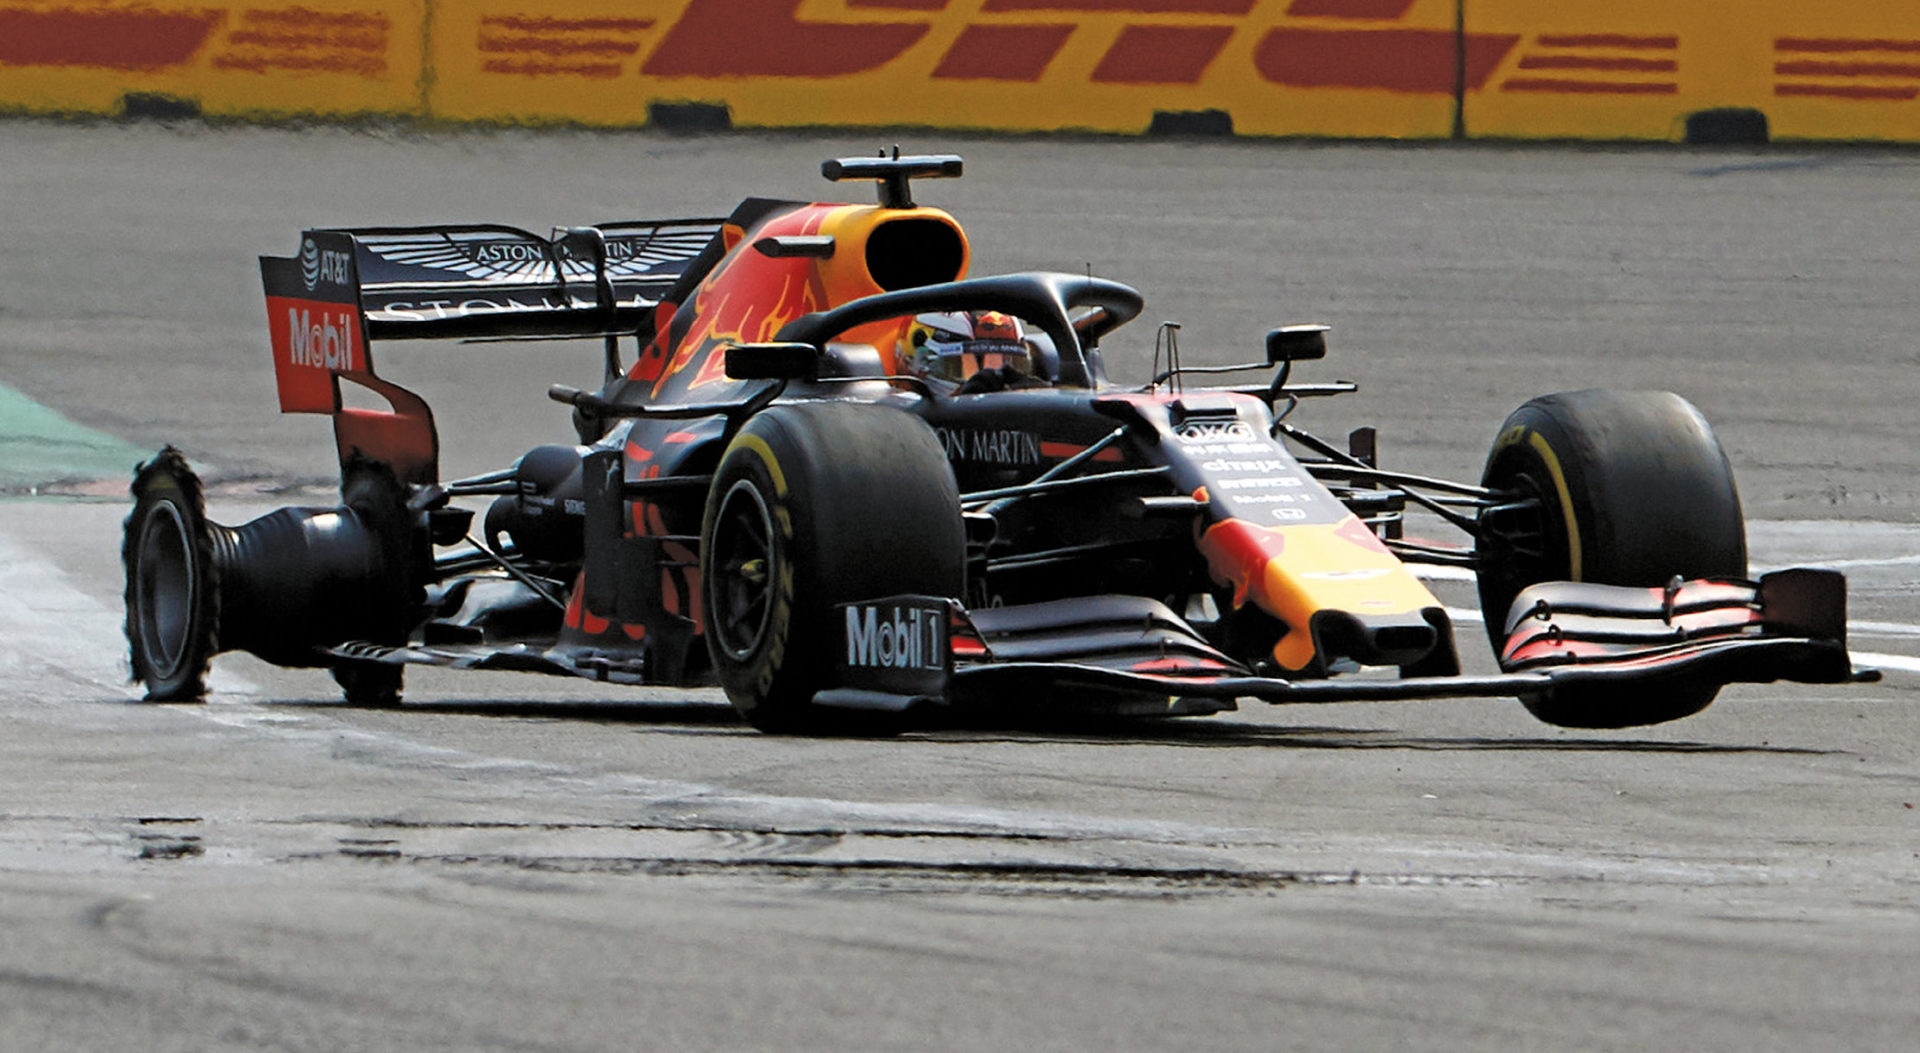 An early puncture for Verstappen wrecked his chances in Mexico